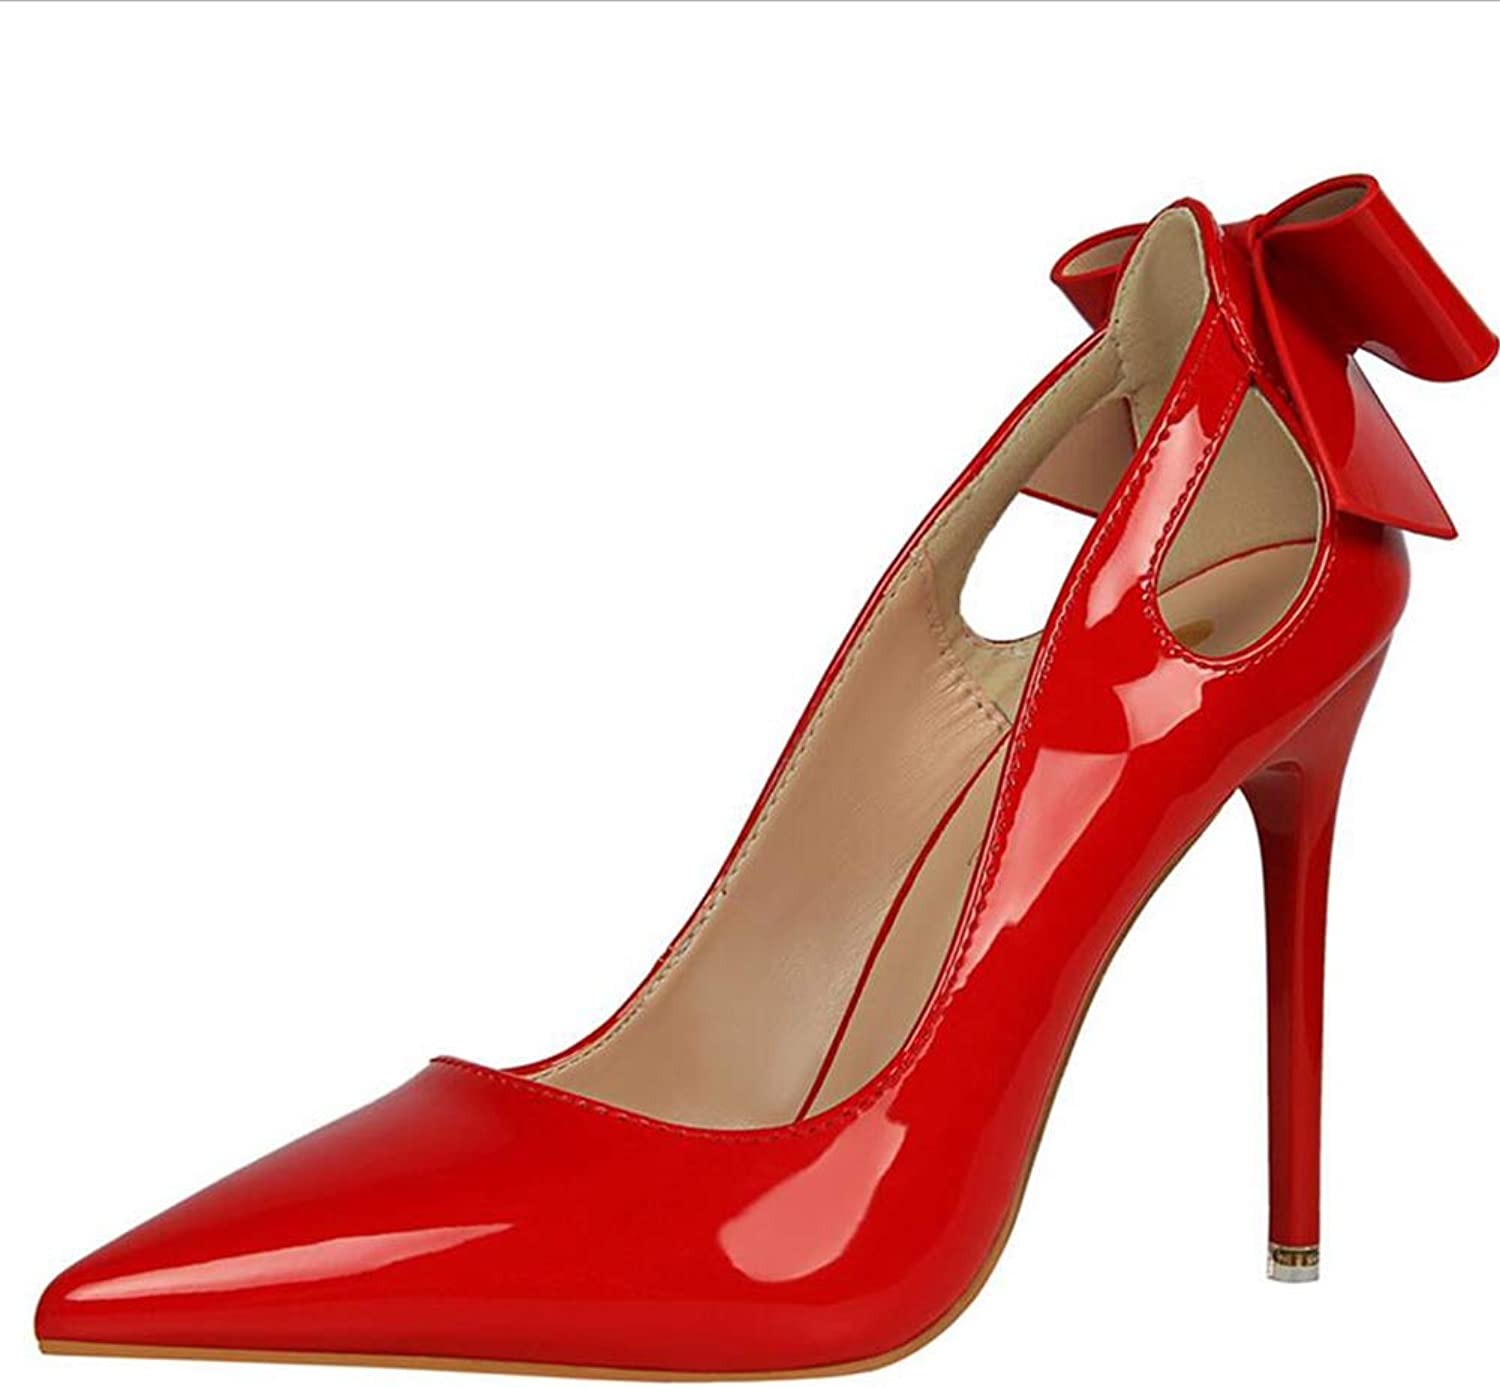 shoes Court shoes Women's shoes High Heel Sexy Slim High-Heeled shoes Fine Heel Shallow Mouth Pointed Patent Leather After Hollowing Out Butterfly Knot Haiming (color   Red, Size   37)